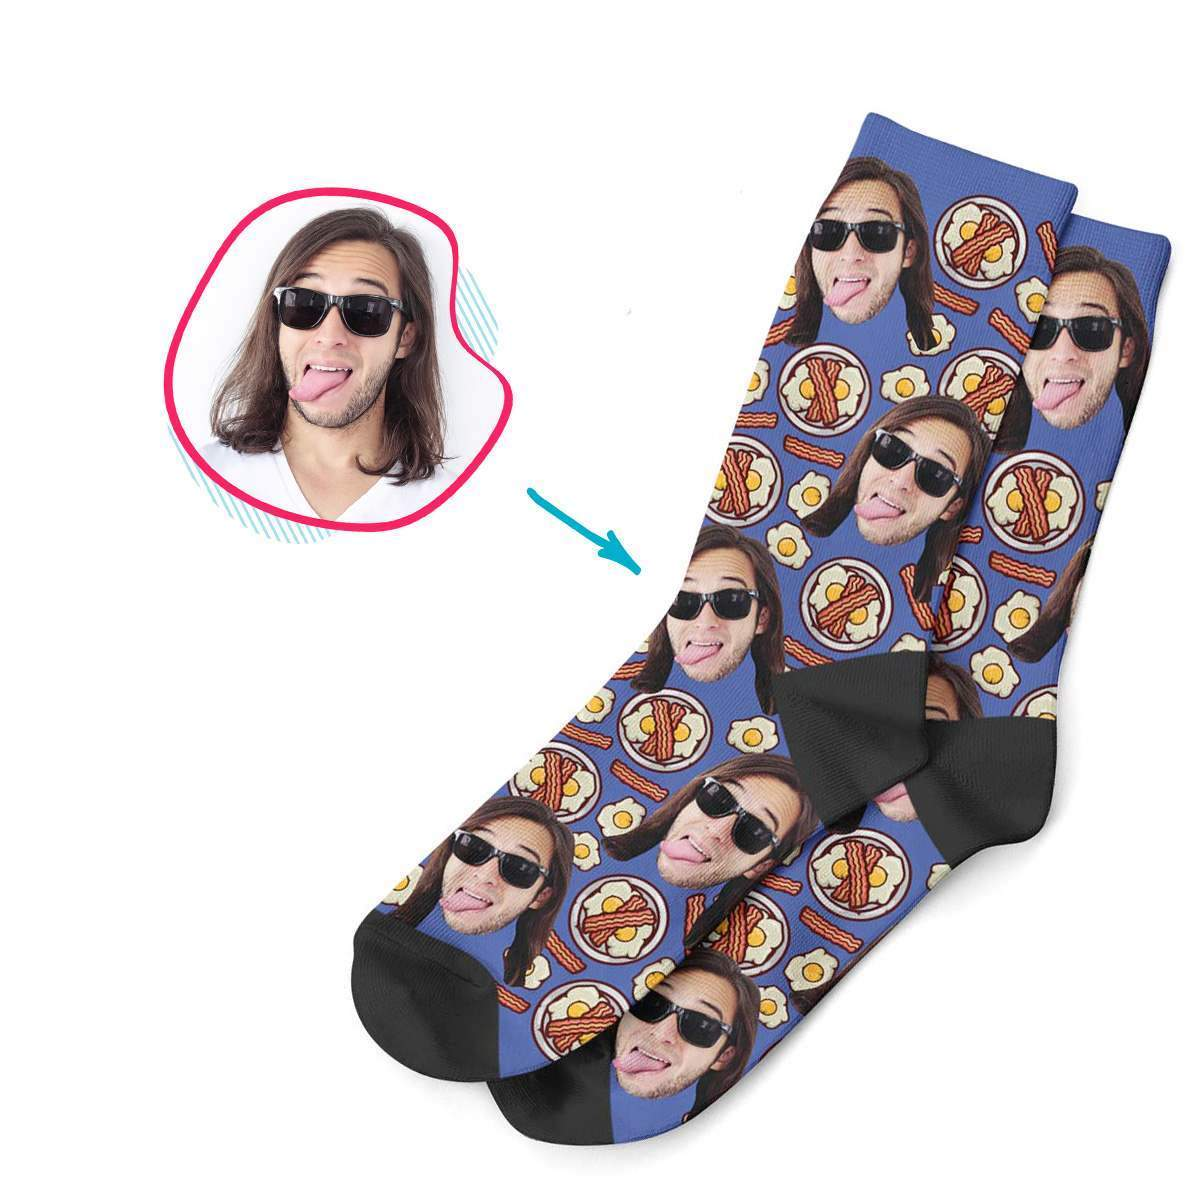 darkblue Bacon and Eggs socks personalized with photo of face printed on them